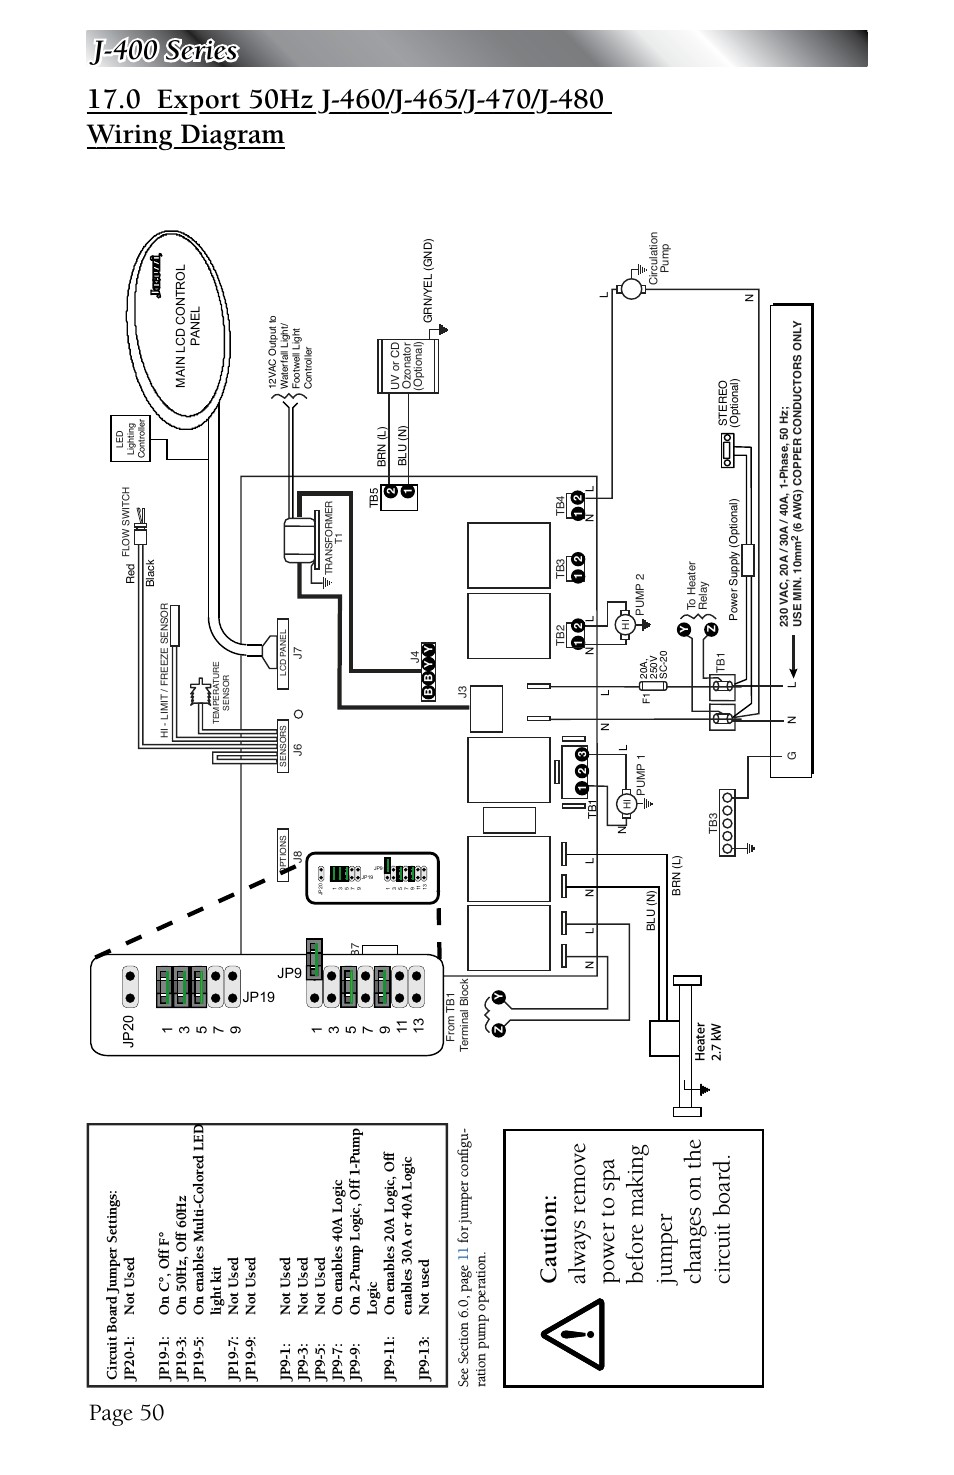 Pool Heat Pump Wiring Diagram from mainetreasurechest.com